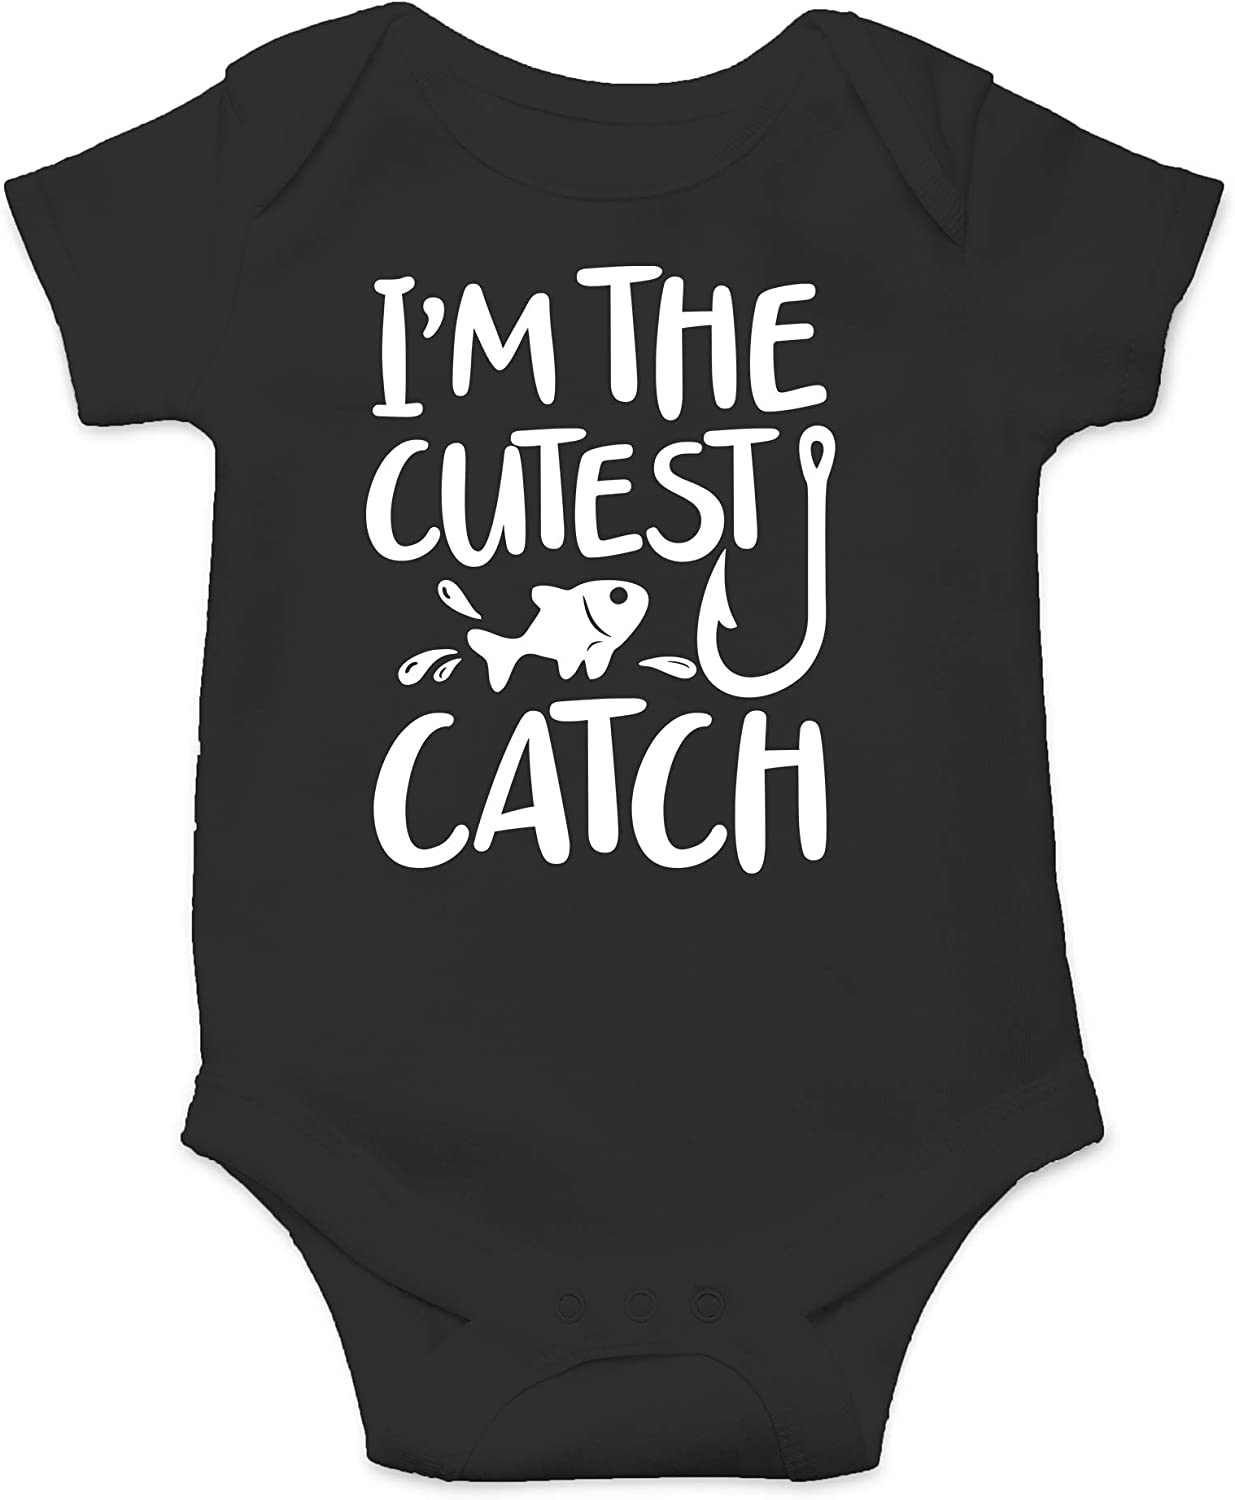 CBTwear I'm The Cutest Catch - Funny Fishing Outfit - Cute Infant One-Piece Baby Bodysuit